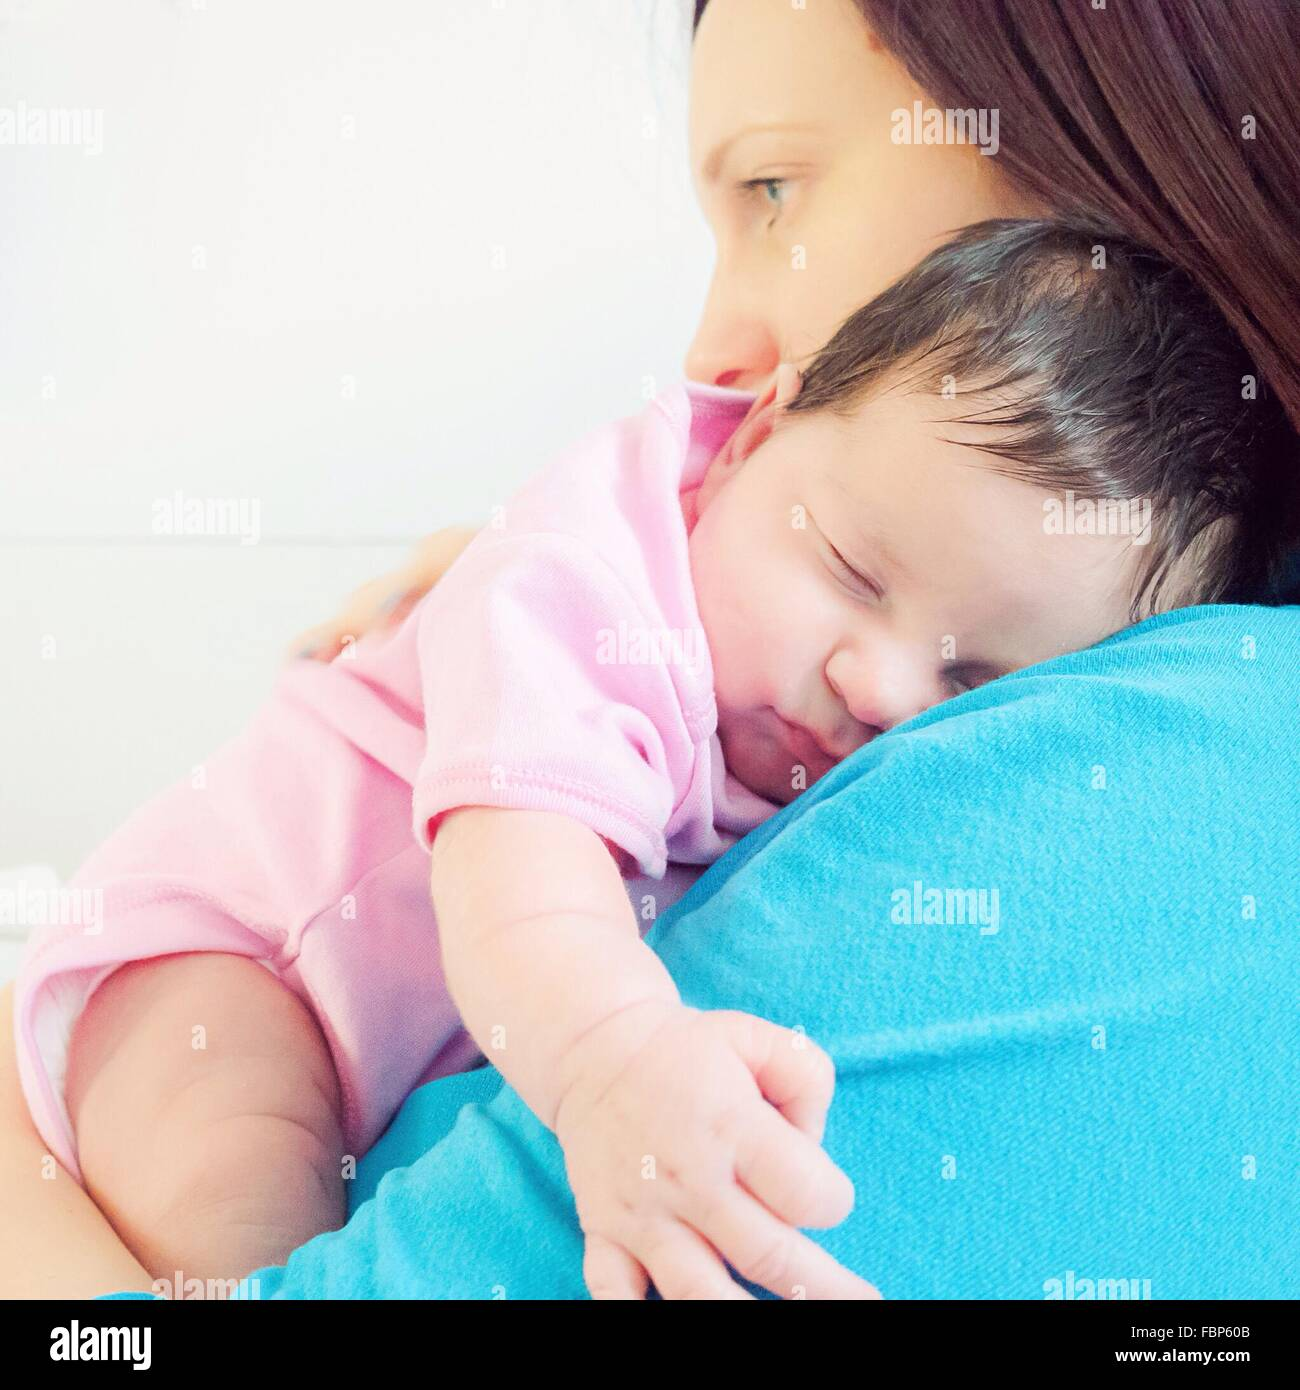 Side View Of Mother Holding Cute Baby Against White Background - Stock Image